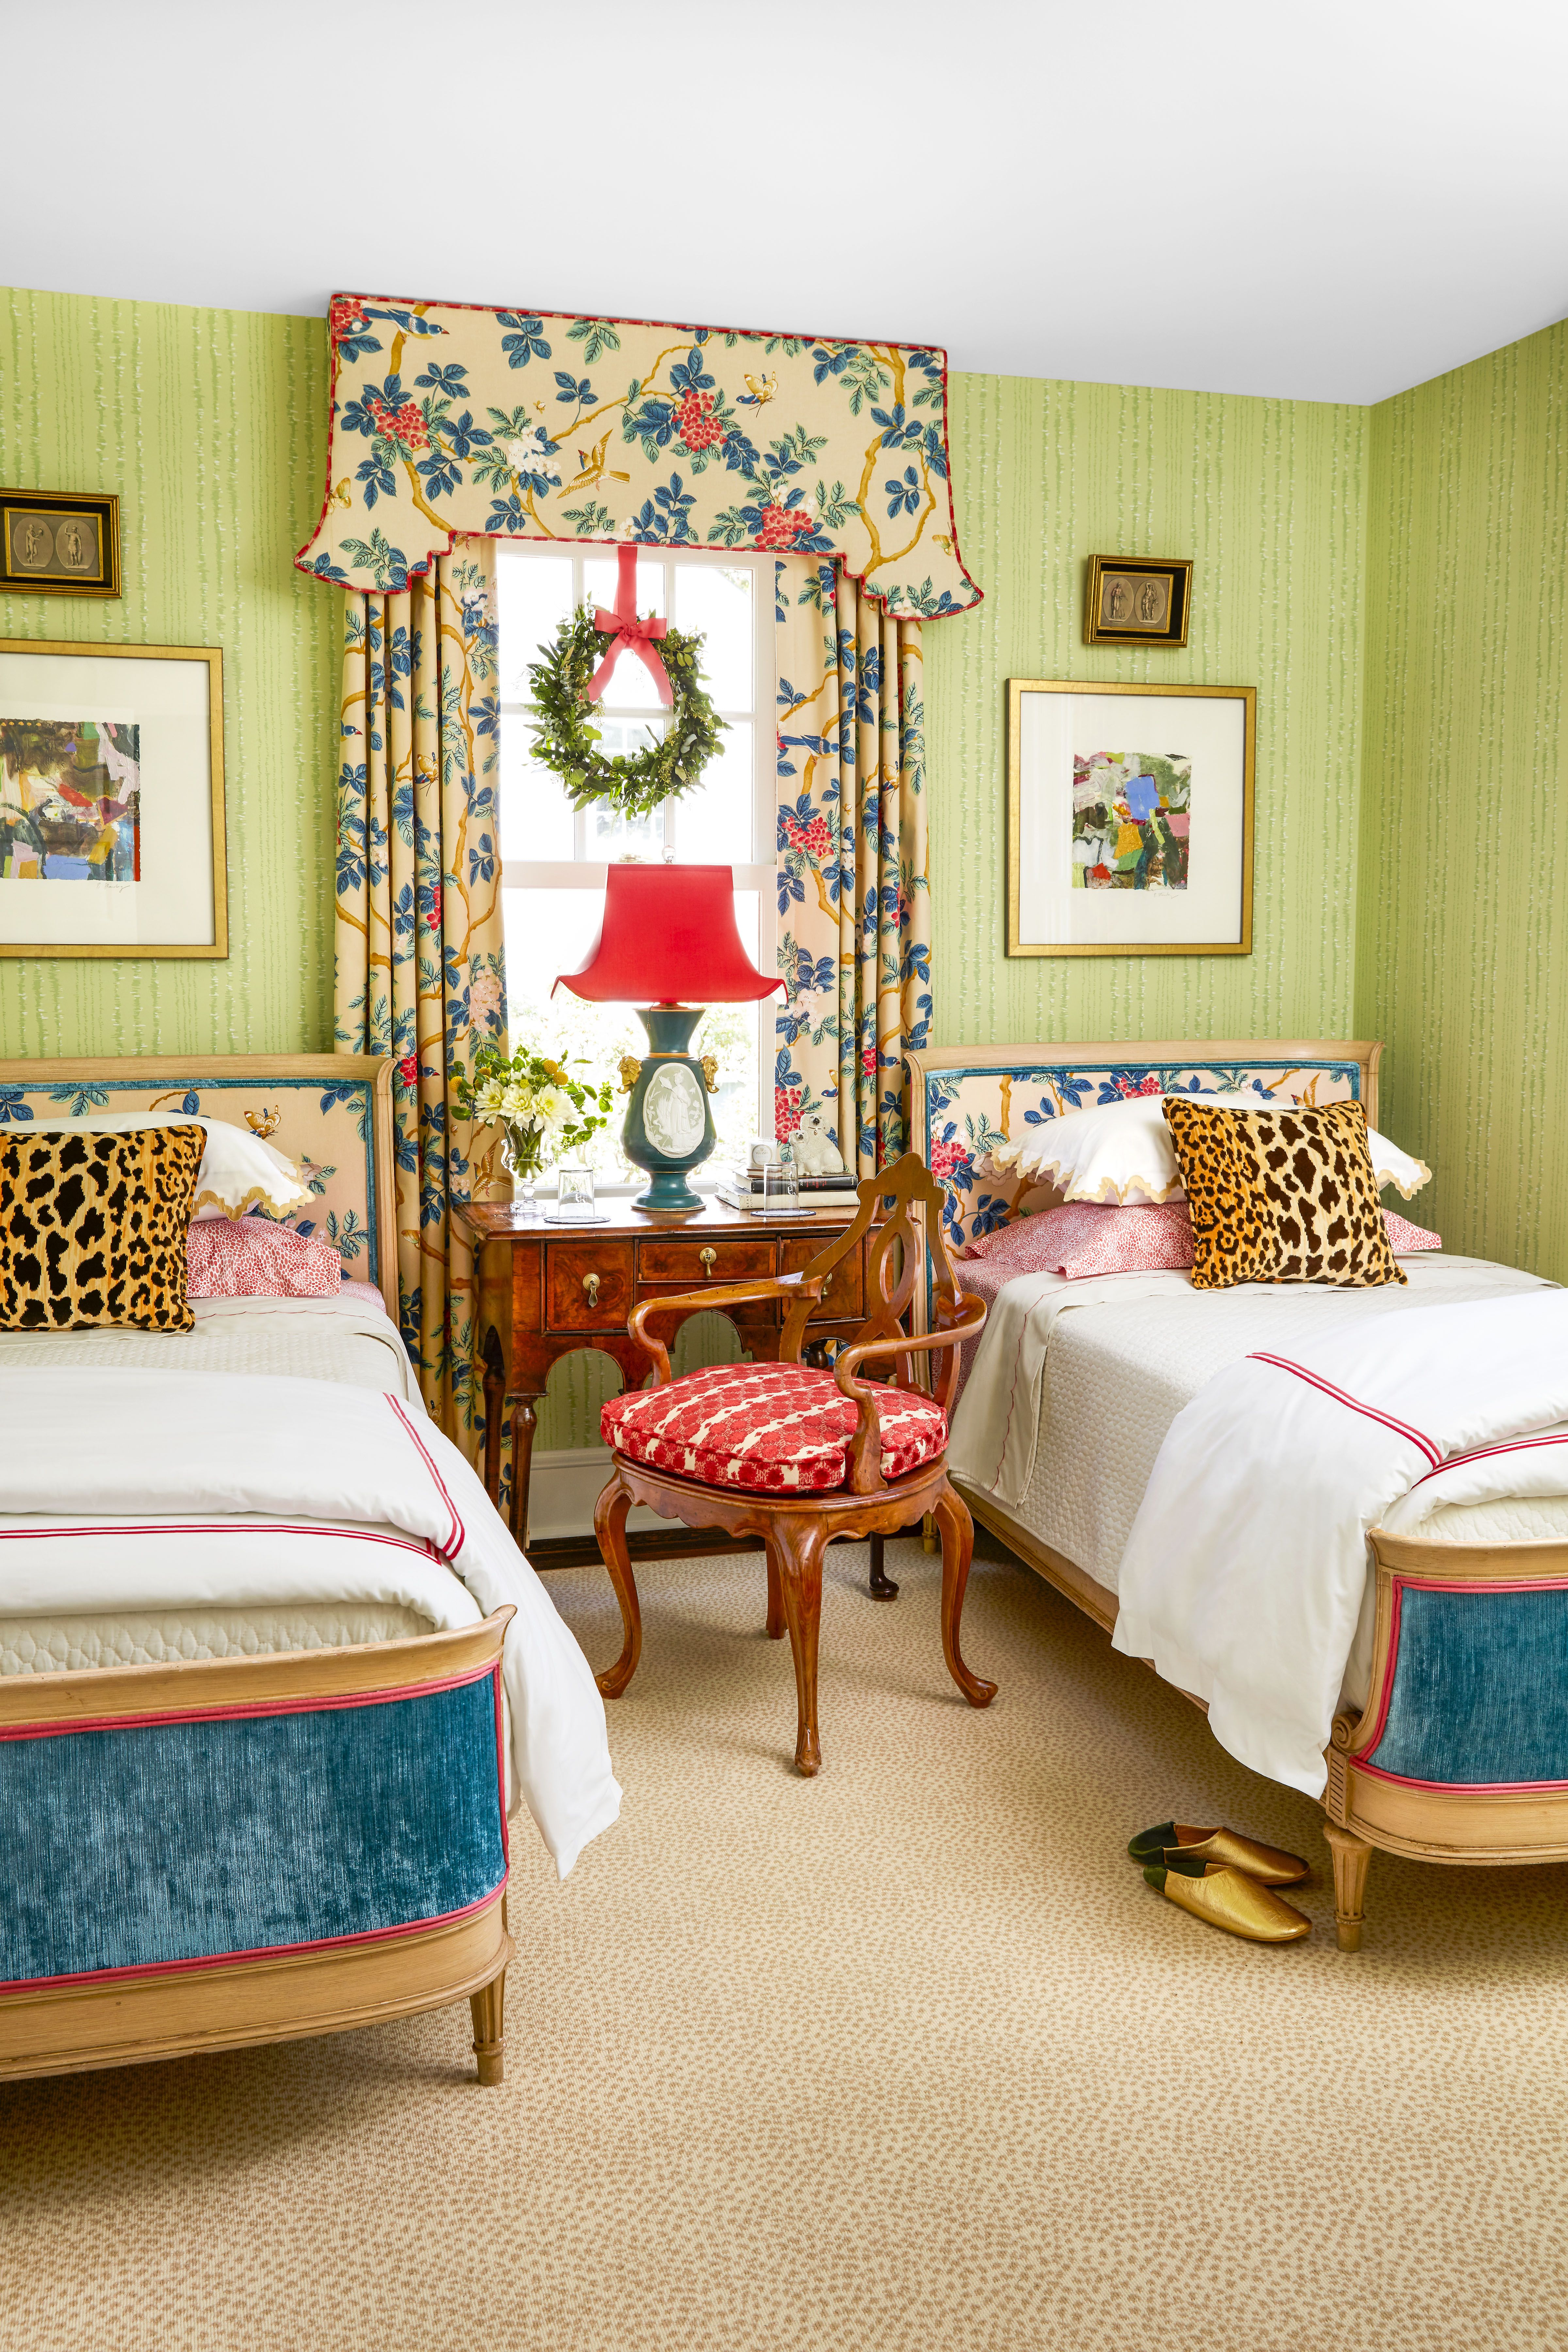 5 Steps to Creating the Perfect Guest Room